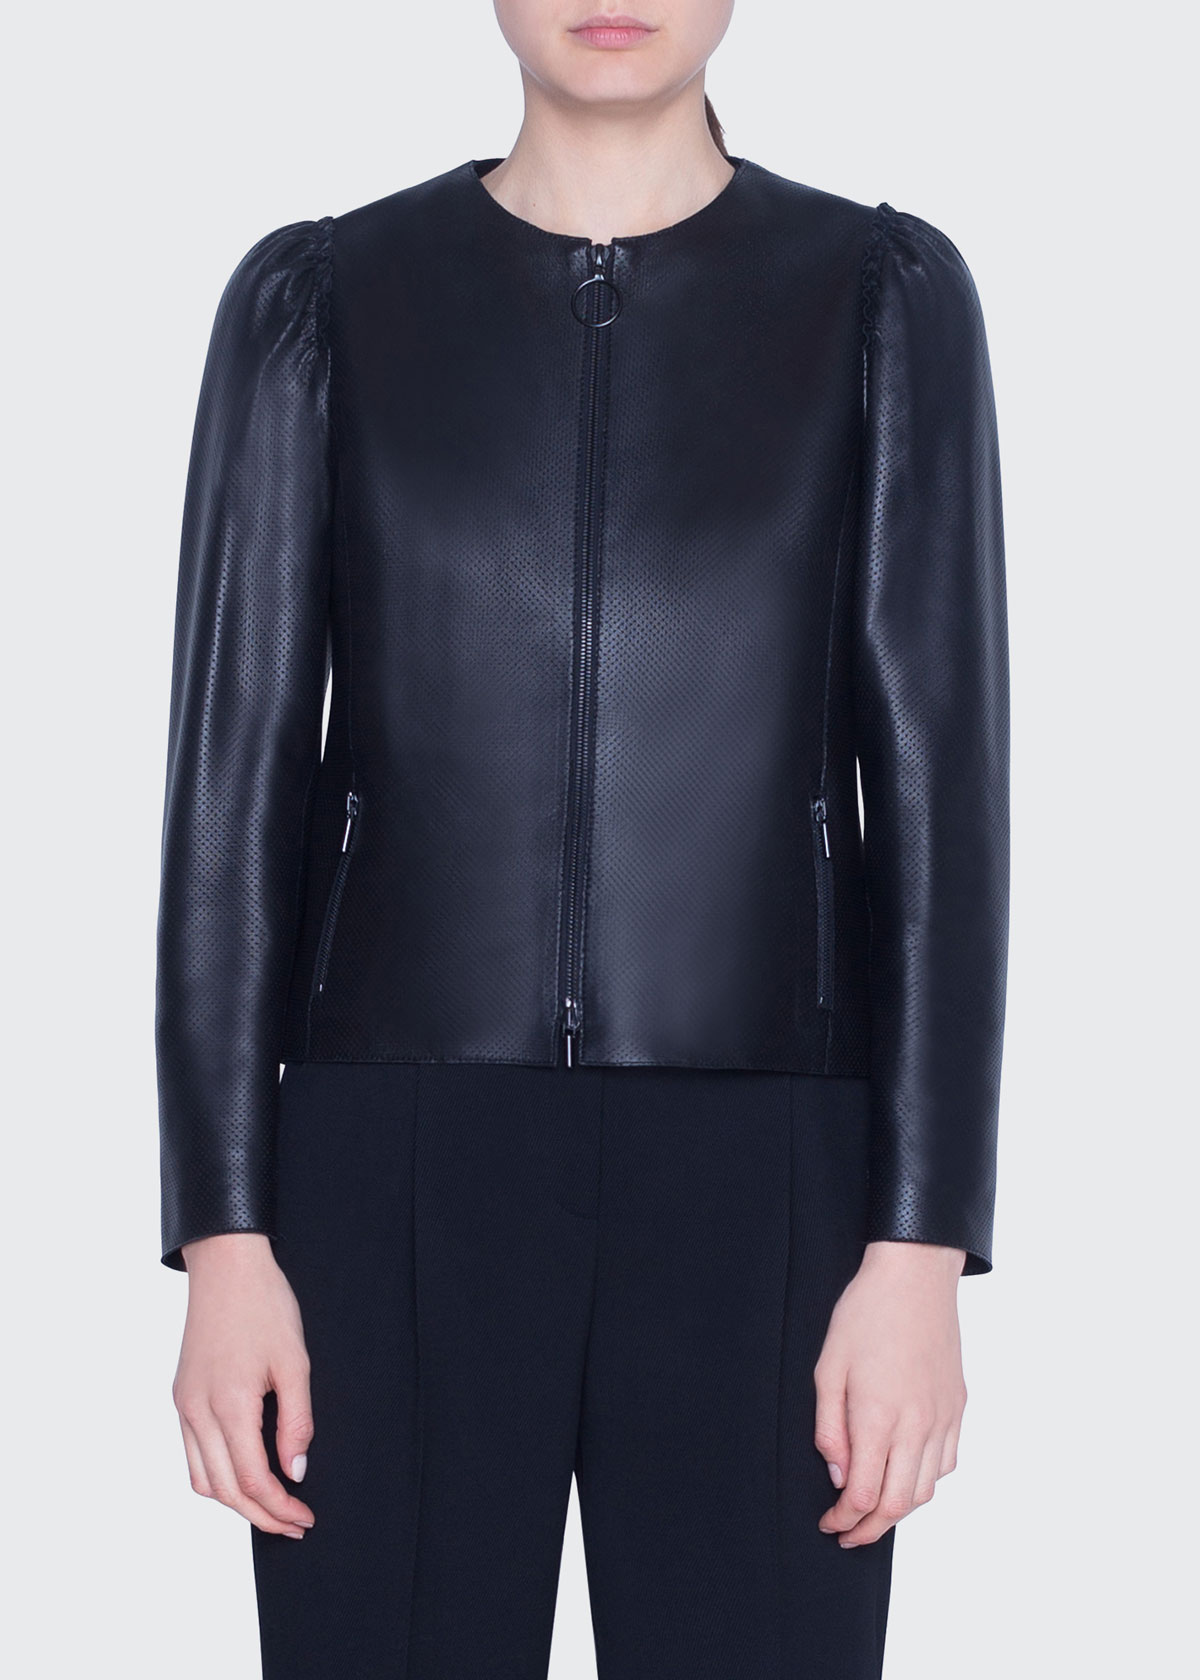 Akris Punto Jackets PERFORATED LEATHER ZIP-FRONT JACKET